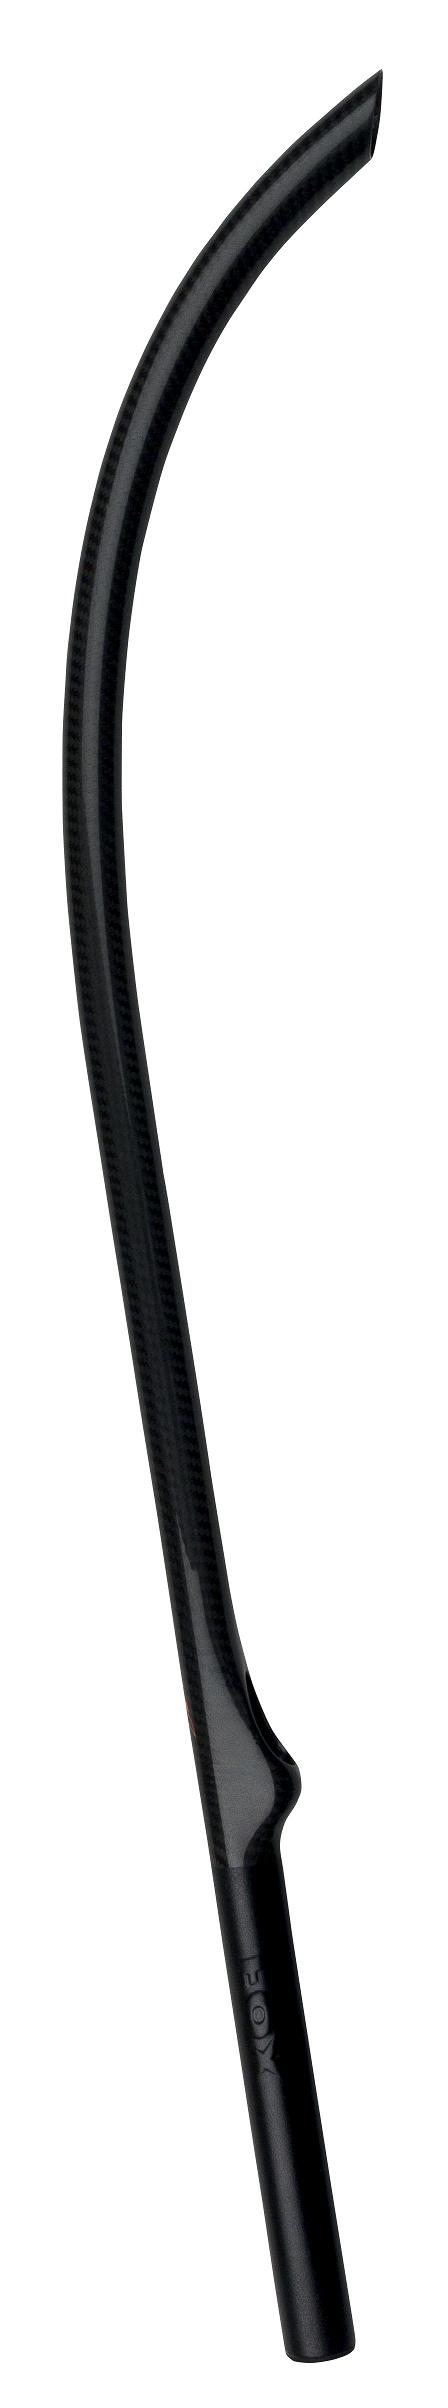 Fox Rangemaster Carbon 26 Throwing Stick 3